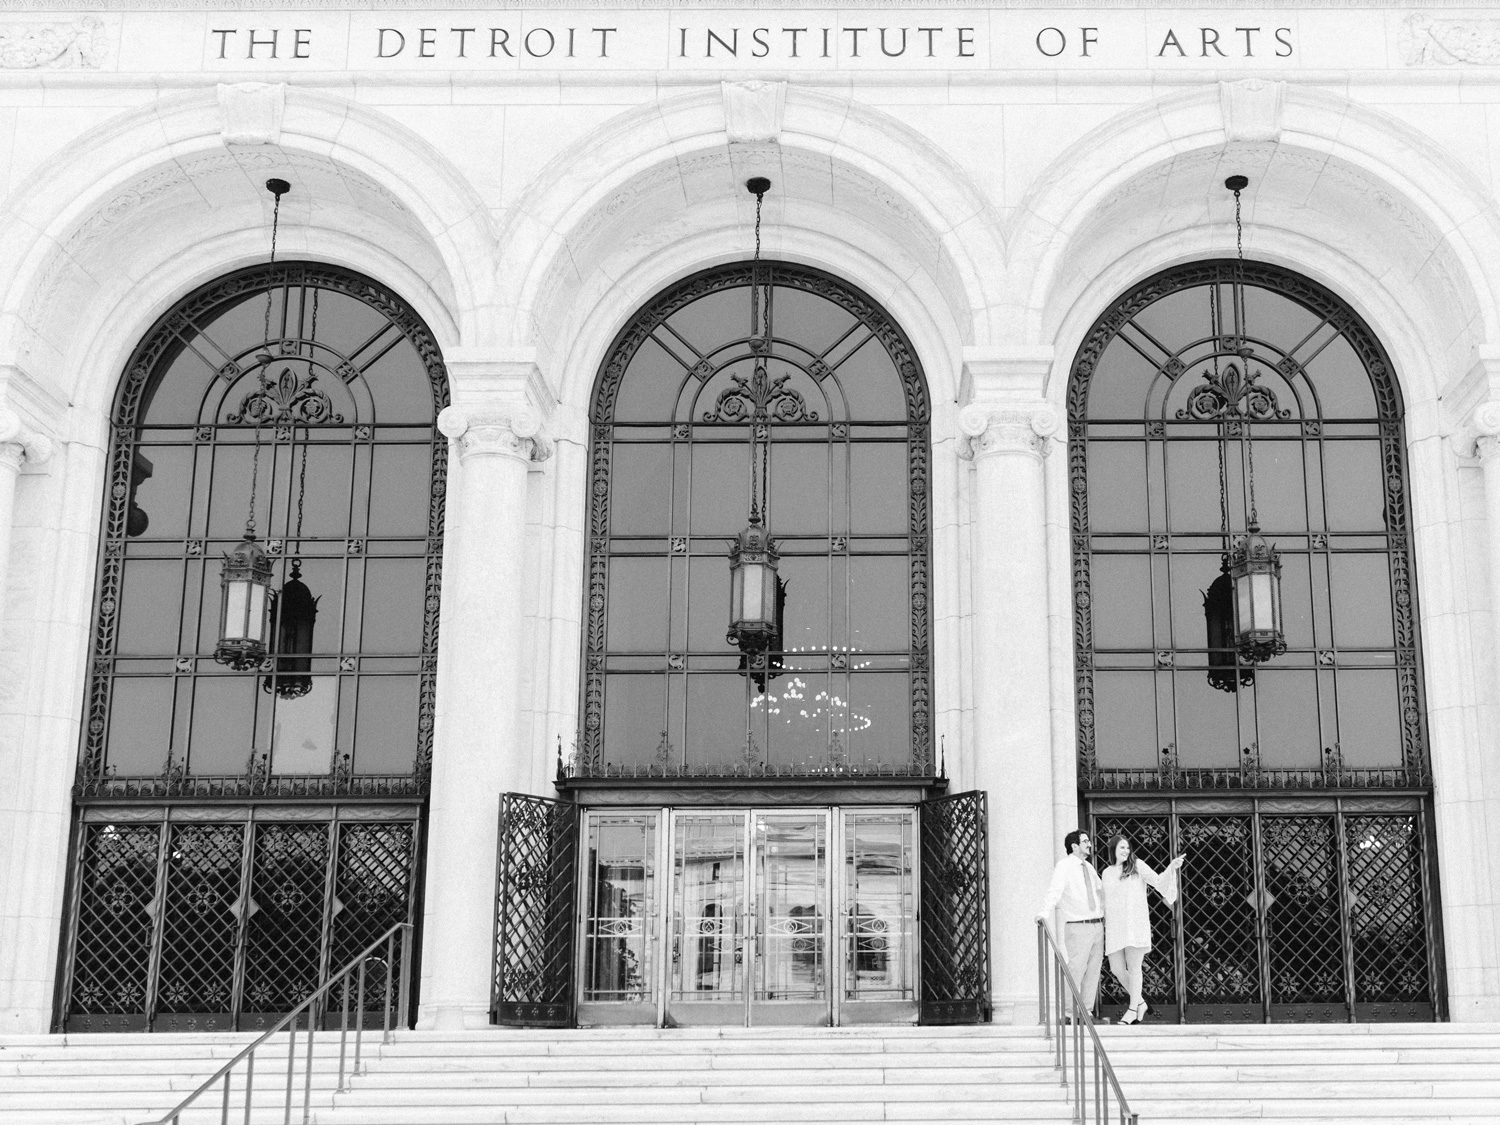 A photo of the Detroit Institute of Arts with an engaged couple together on the steps, the woman pointing as they take in the sights of Woodward Avenue